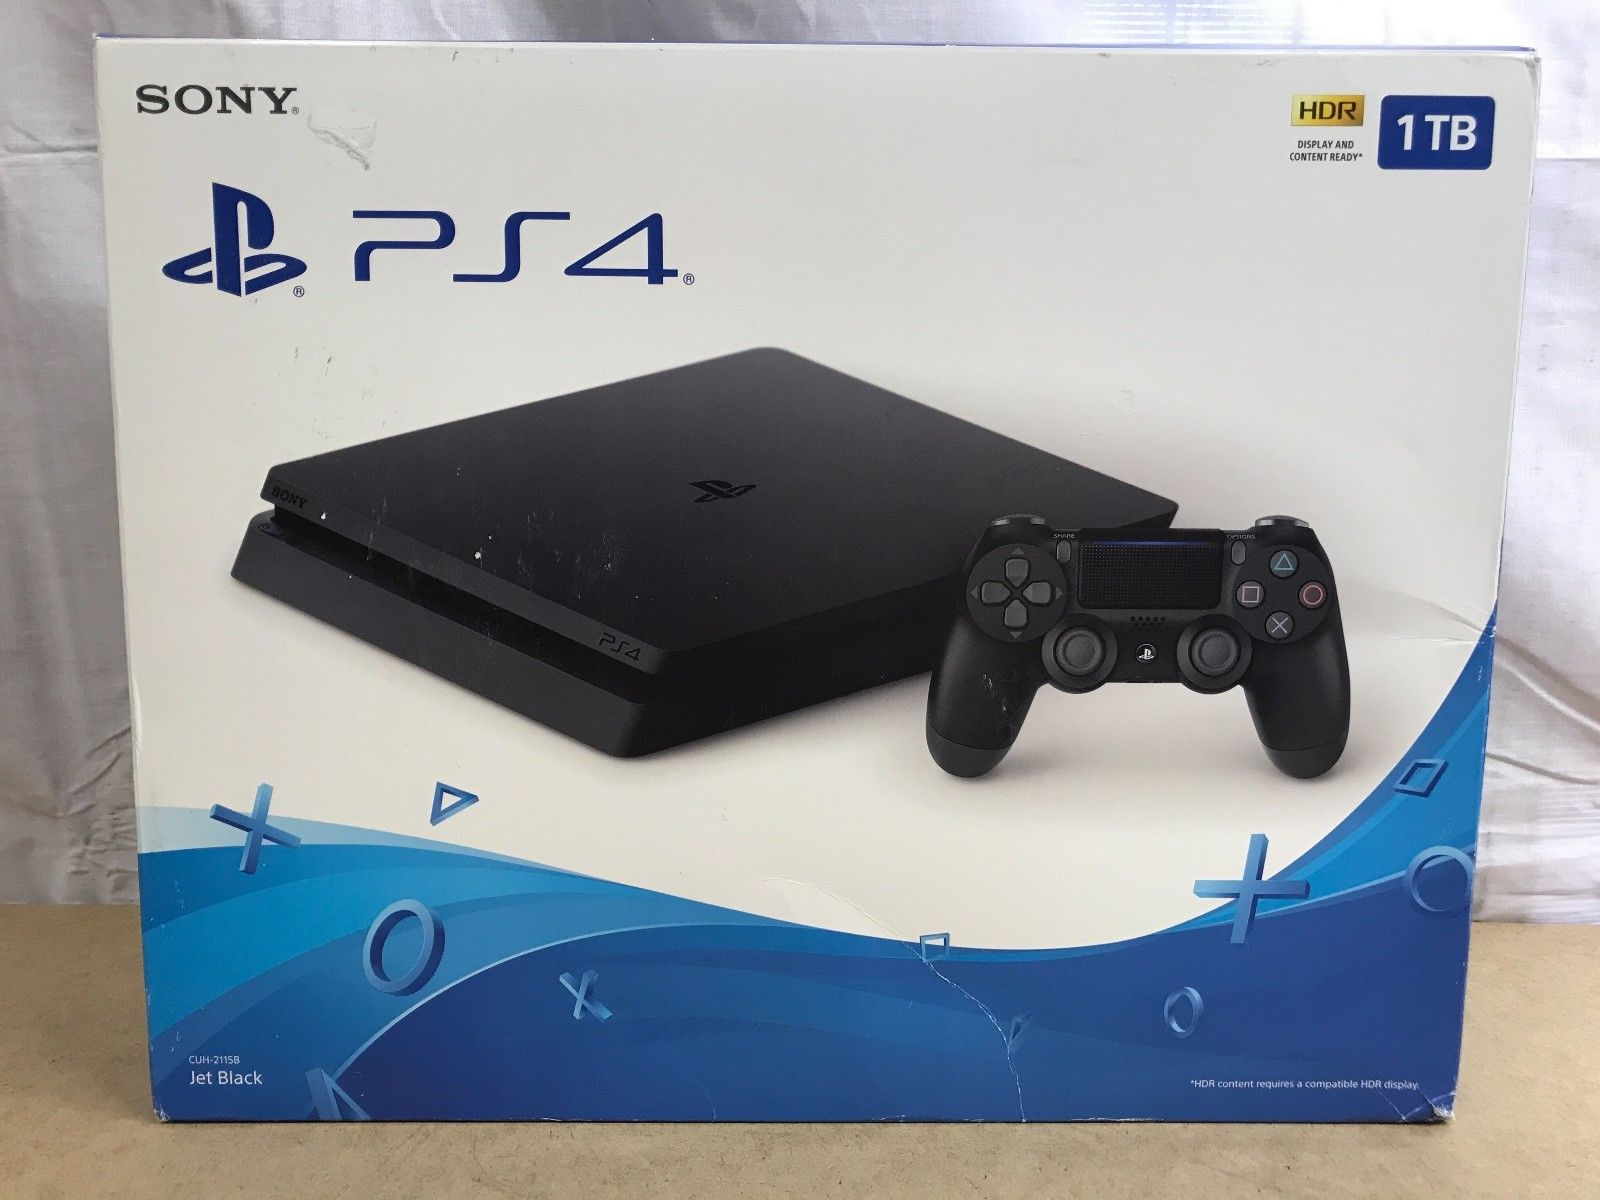 Sony PlayStation 4 1TB Video Game Console  WHATSAPP CHAT:+971 52 334 2859